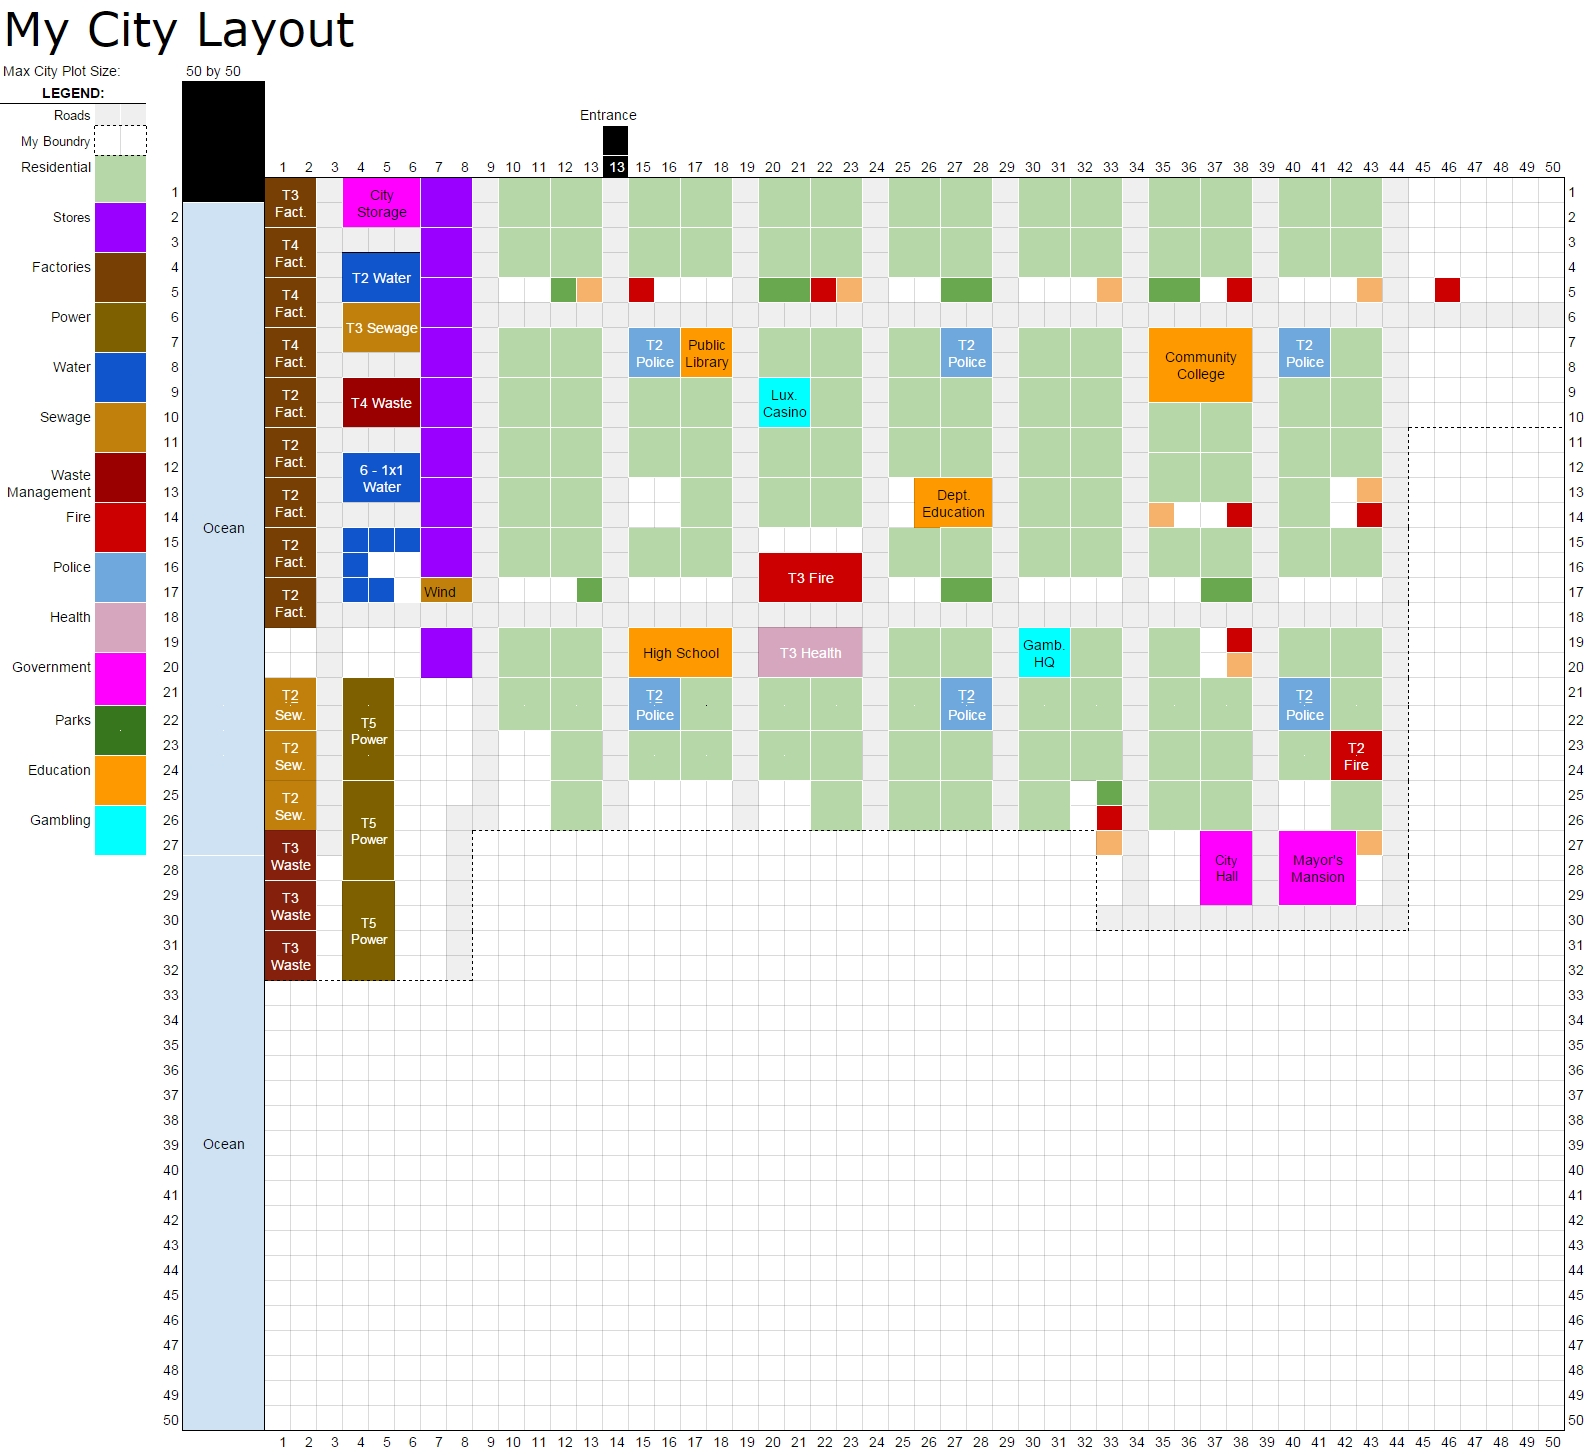 City Layout (Overview)